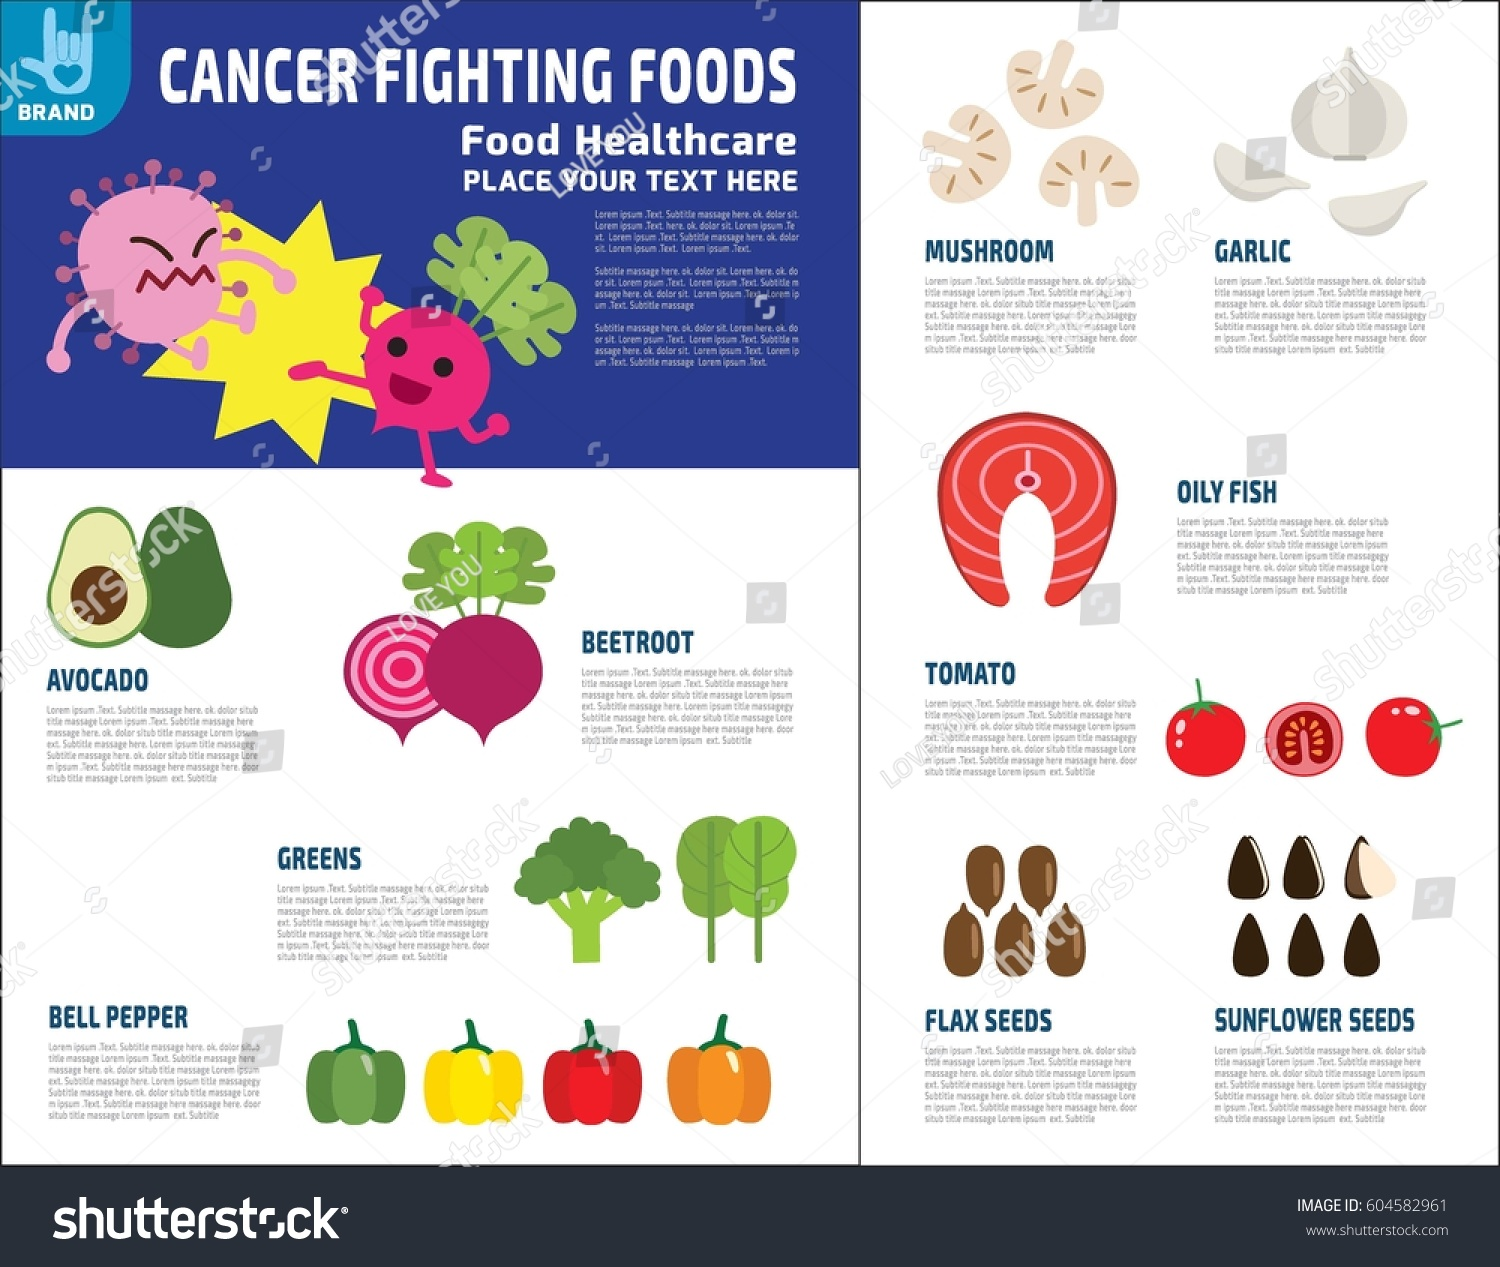 Foods Fighting Cancer Source Medical Healthcare Stock Vector